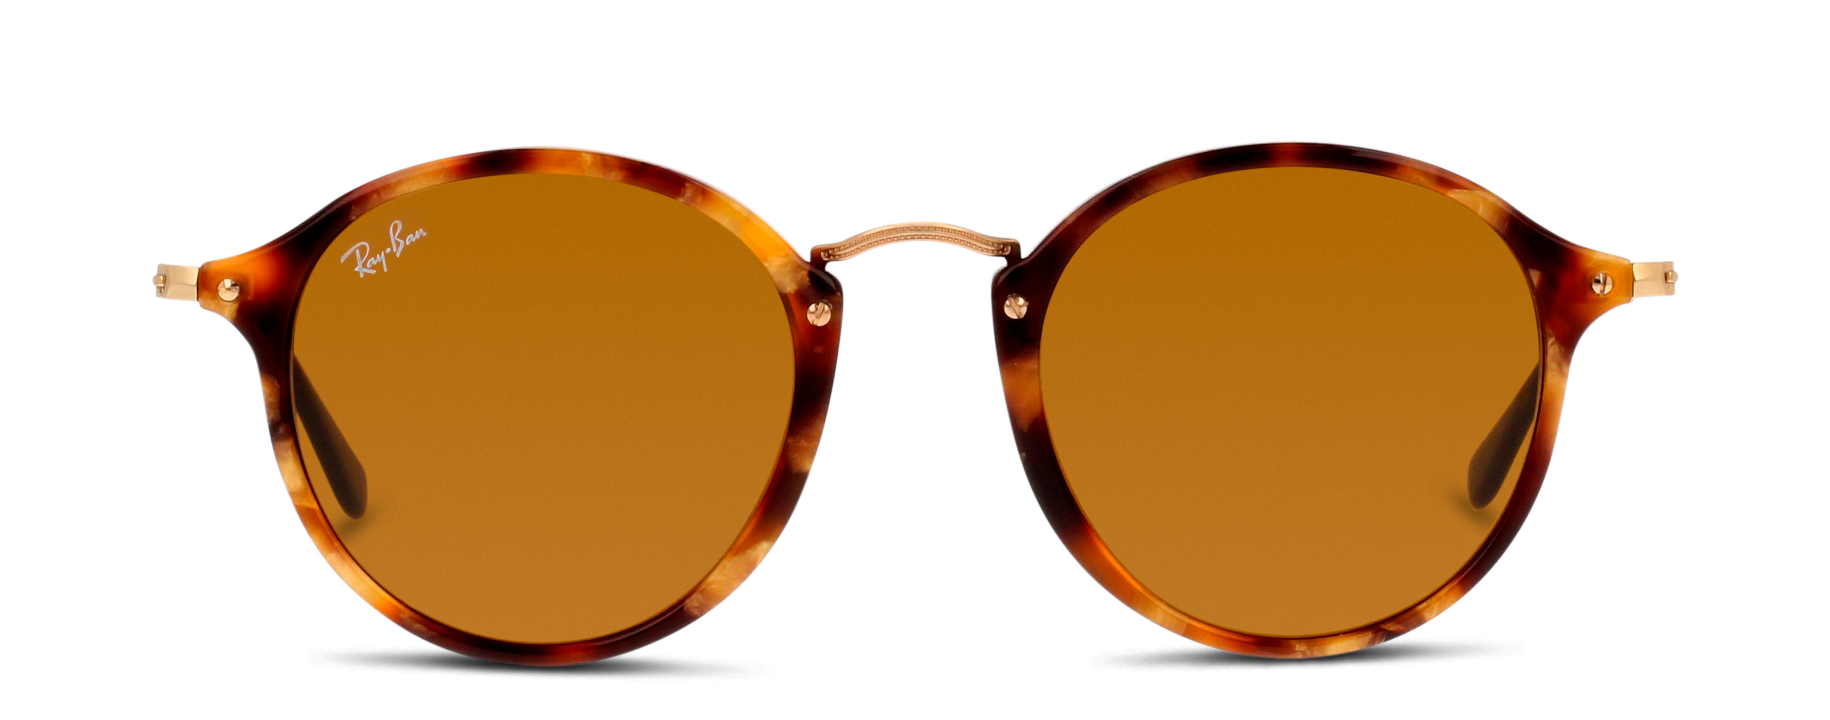 Front Ray-Ban 0RB2447/1160/4921/145 Brun